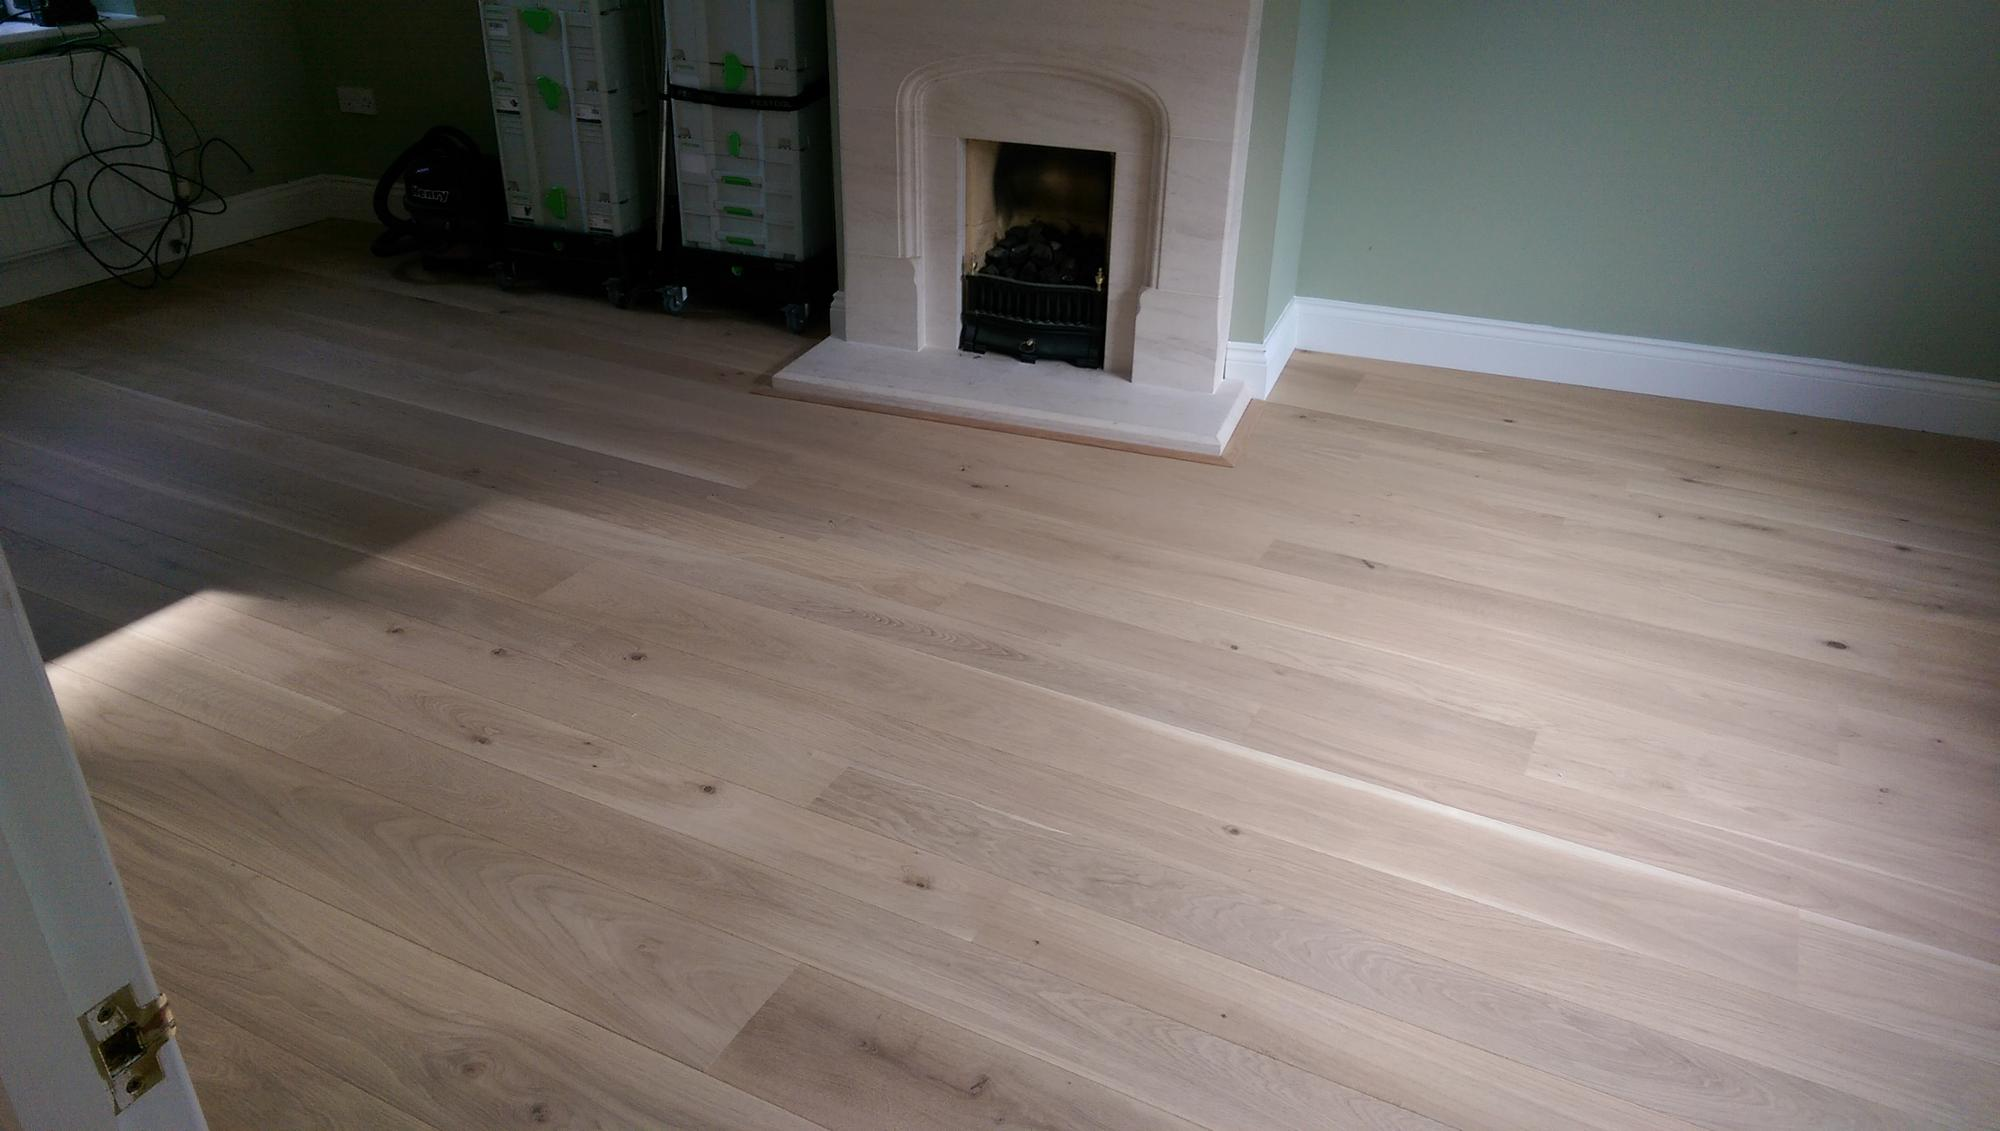 2019 new indoor engineered wood flooring laminate for building materials